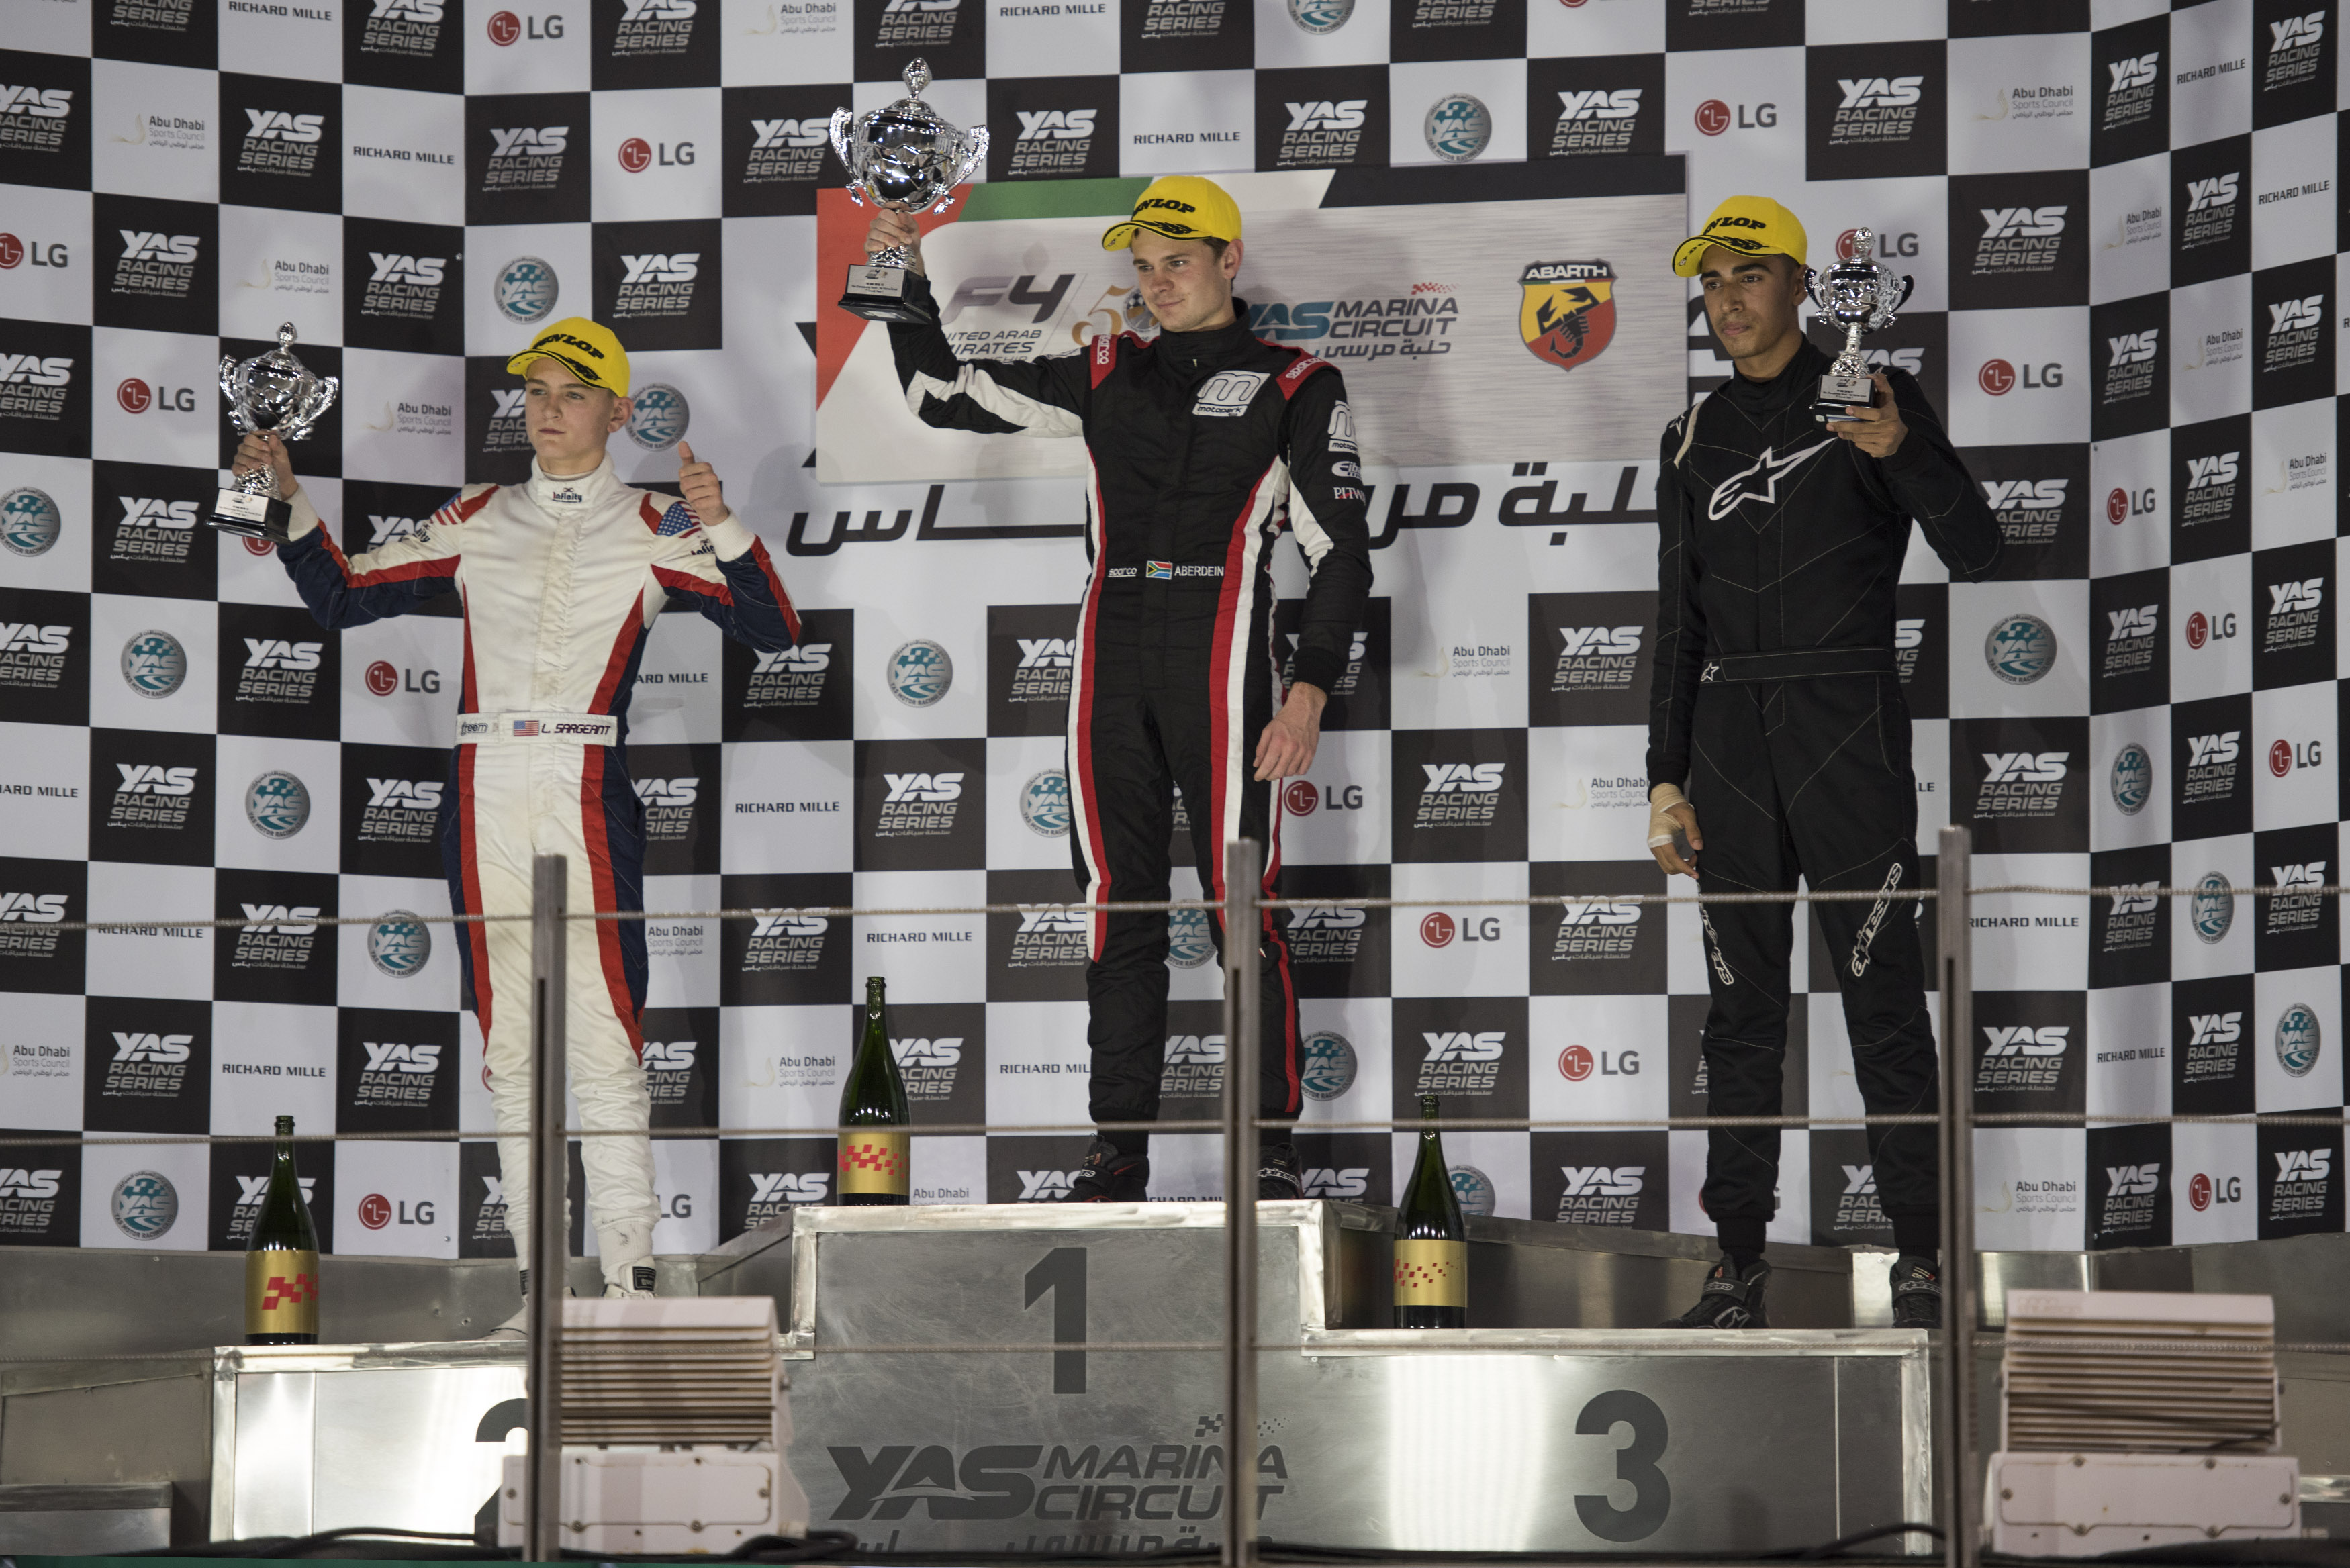 F4UAE TrophyEvent Oct16 Podium